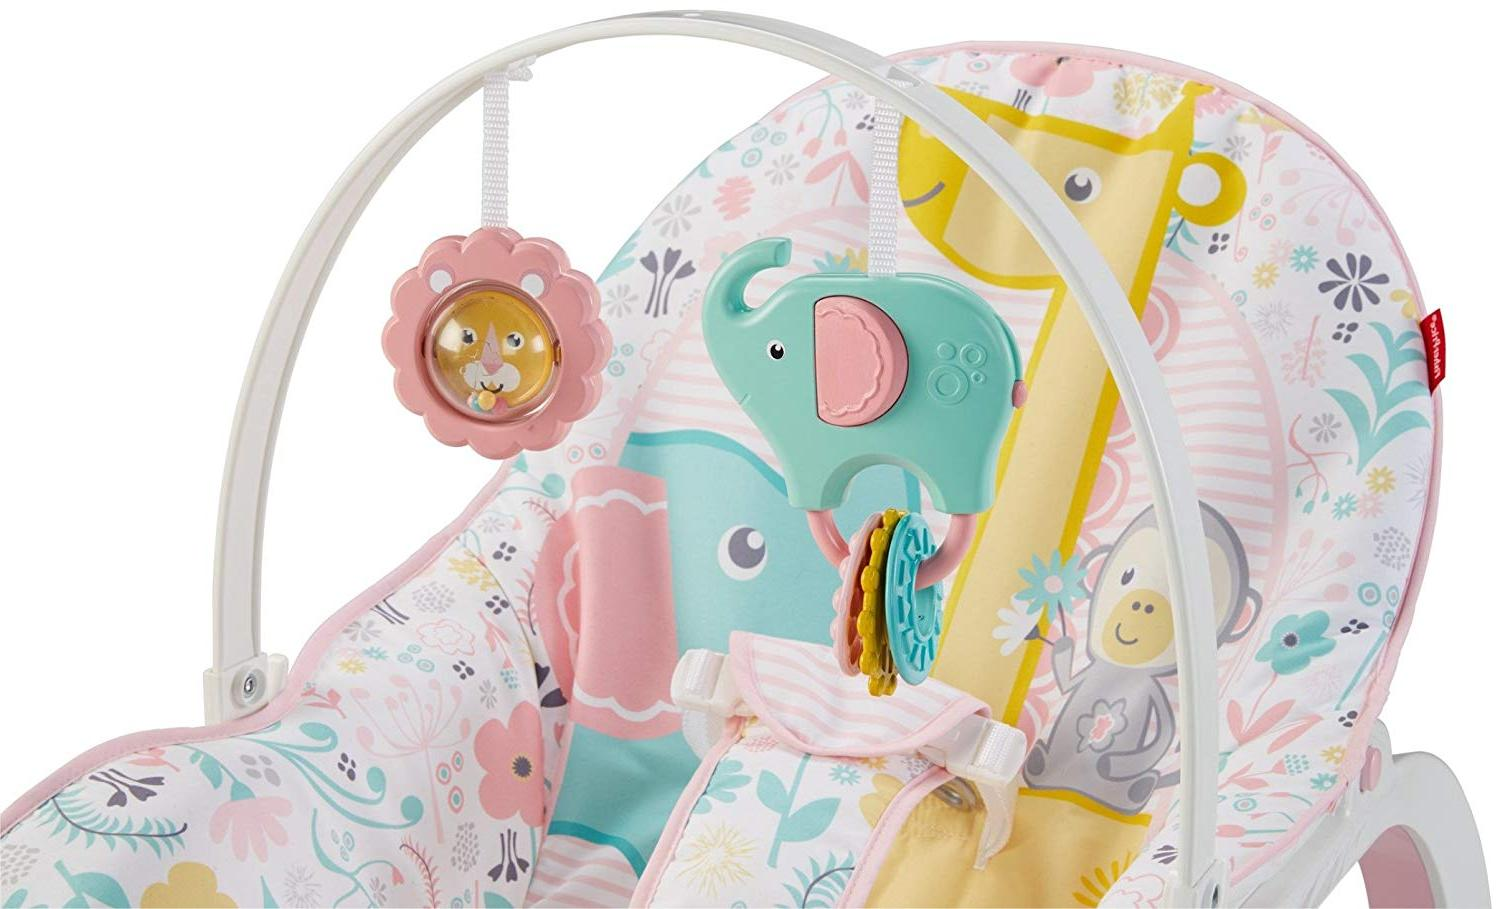 BABY ROCKER INFANT to Swing Seat Bouncer Nap